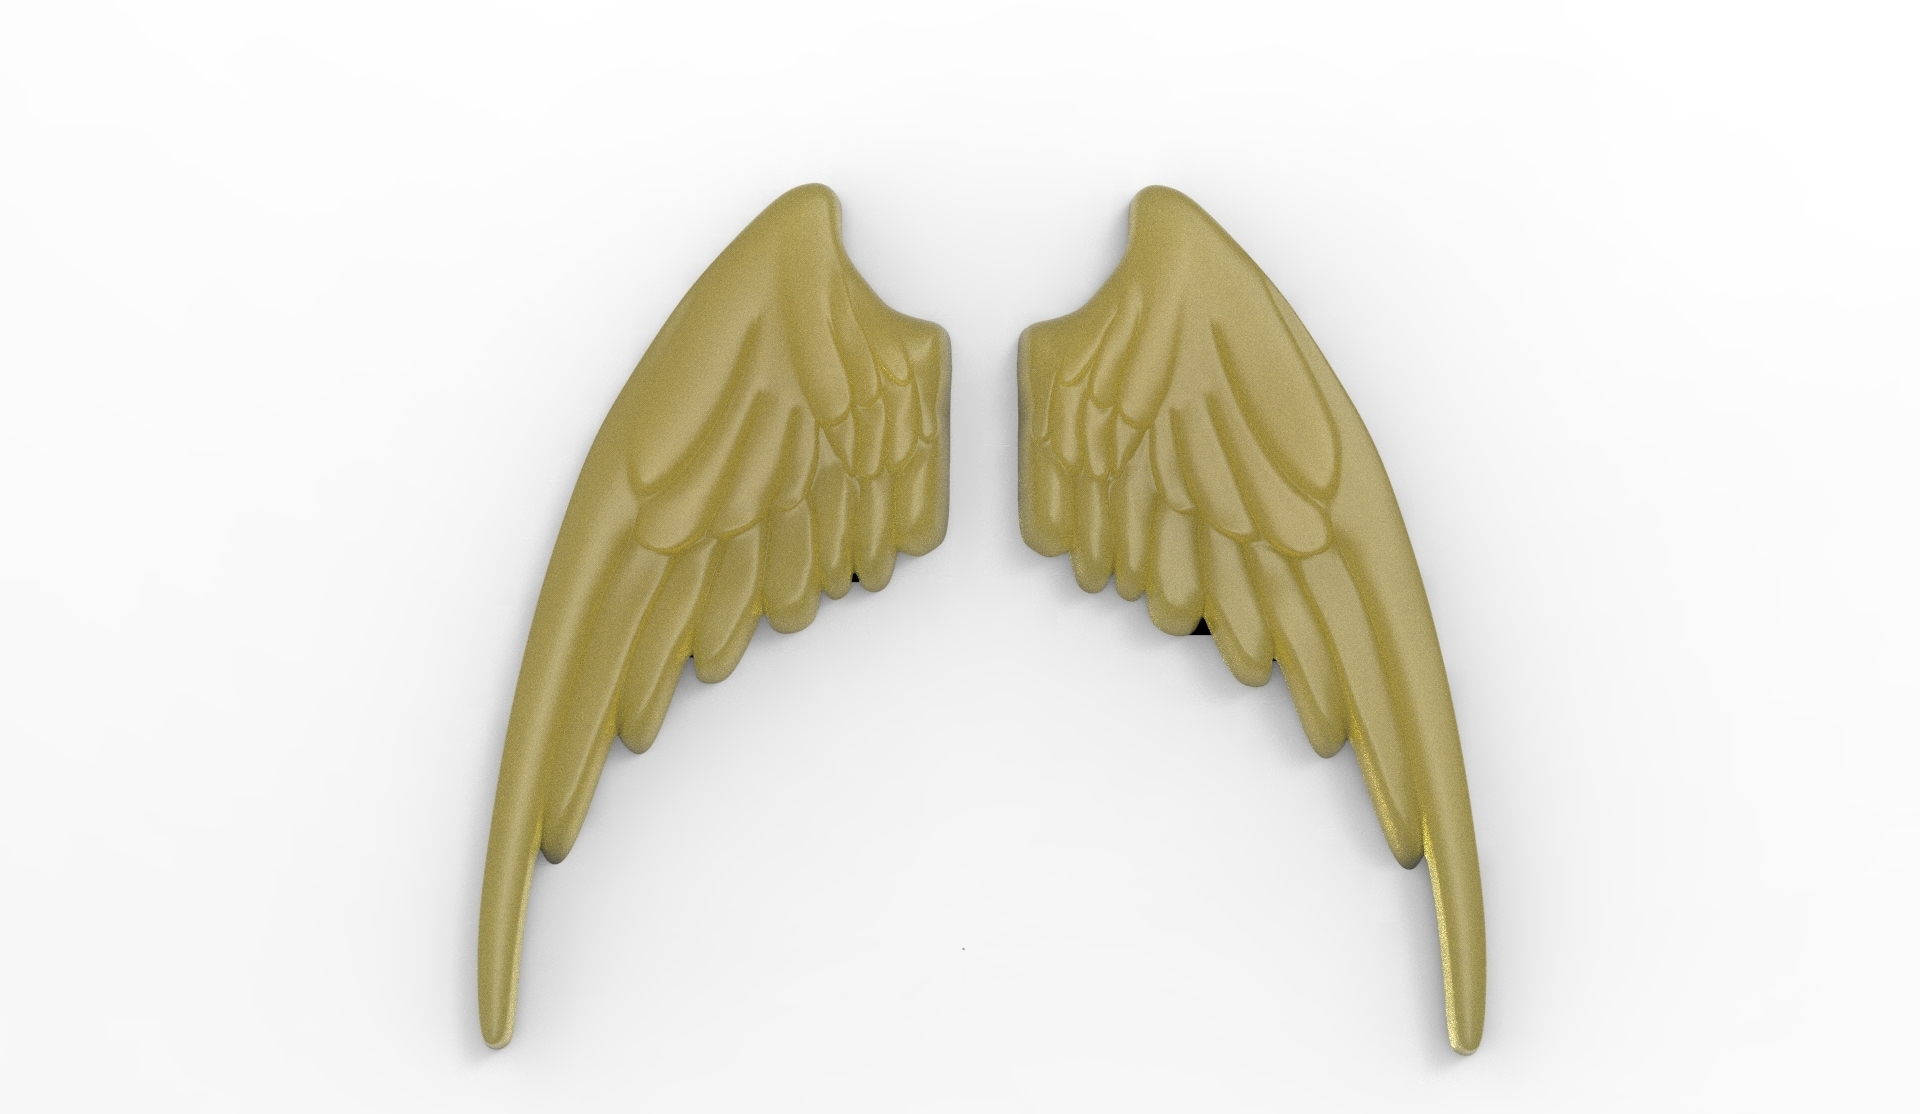 AILES R8.jpg Download STL file Wings in low relief angel bird sculpture plaster wood • Object to 3D print, Vape